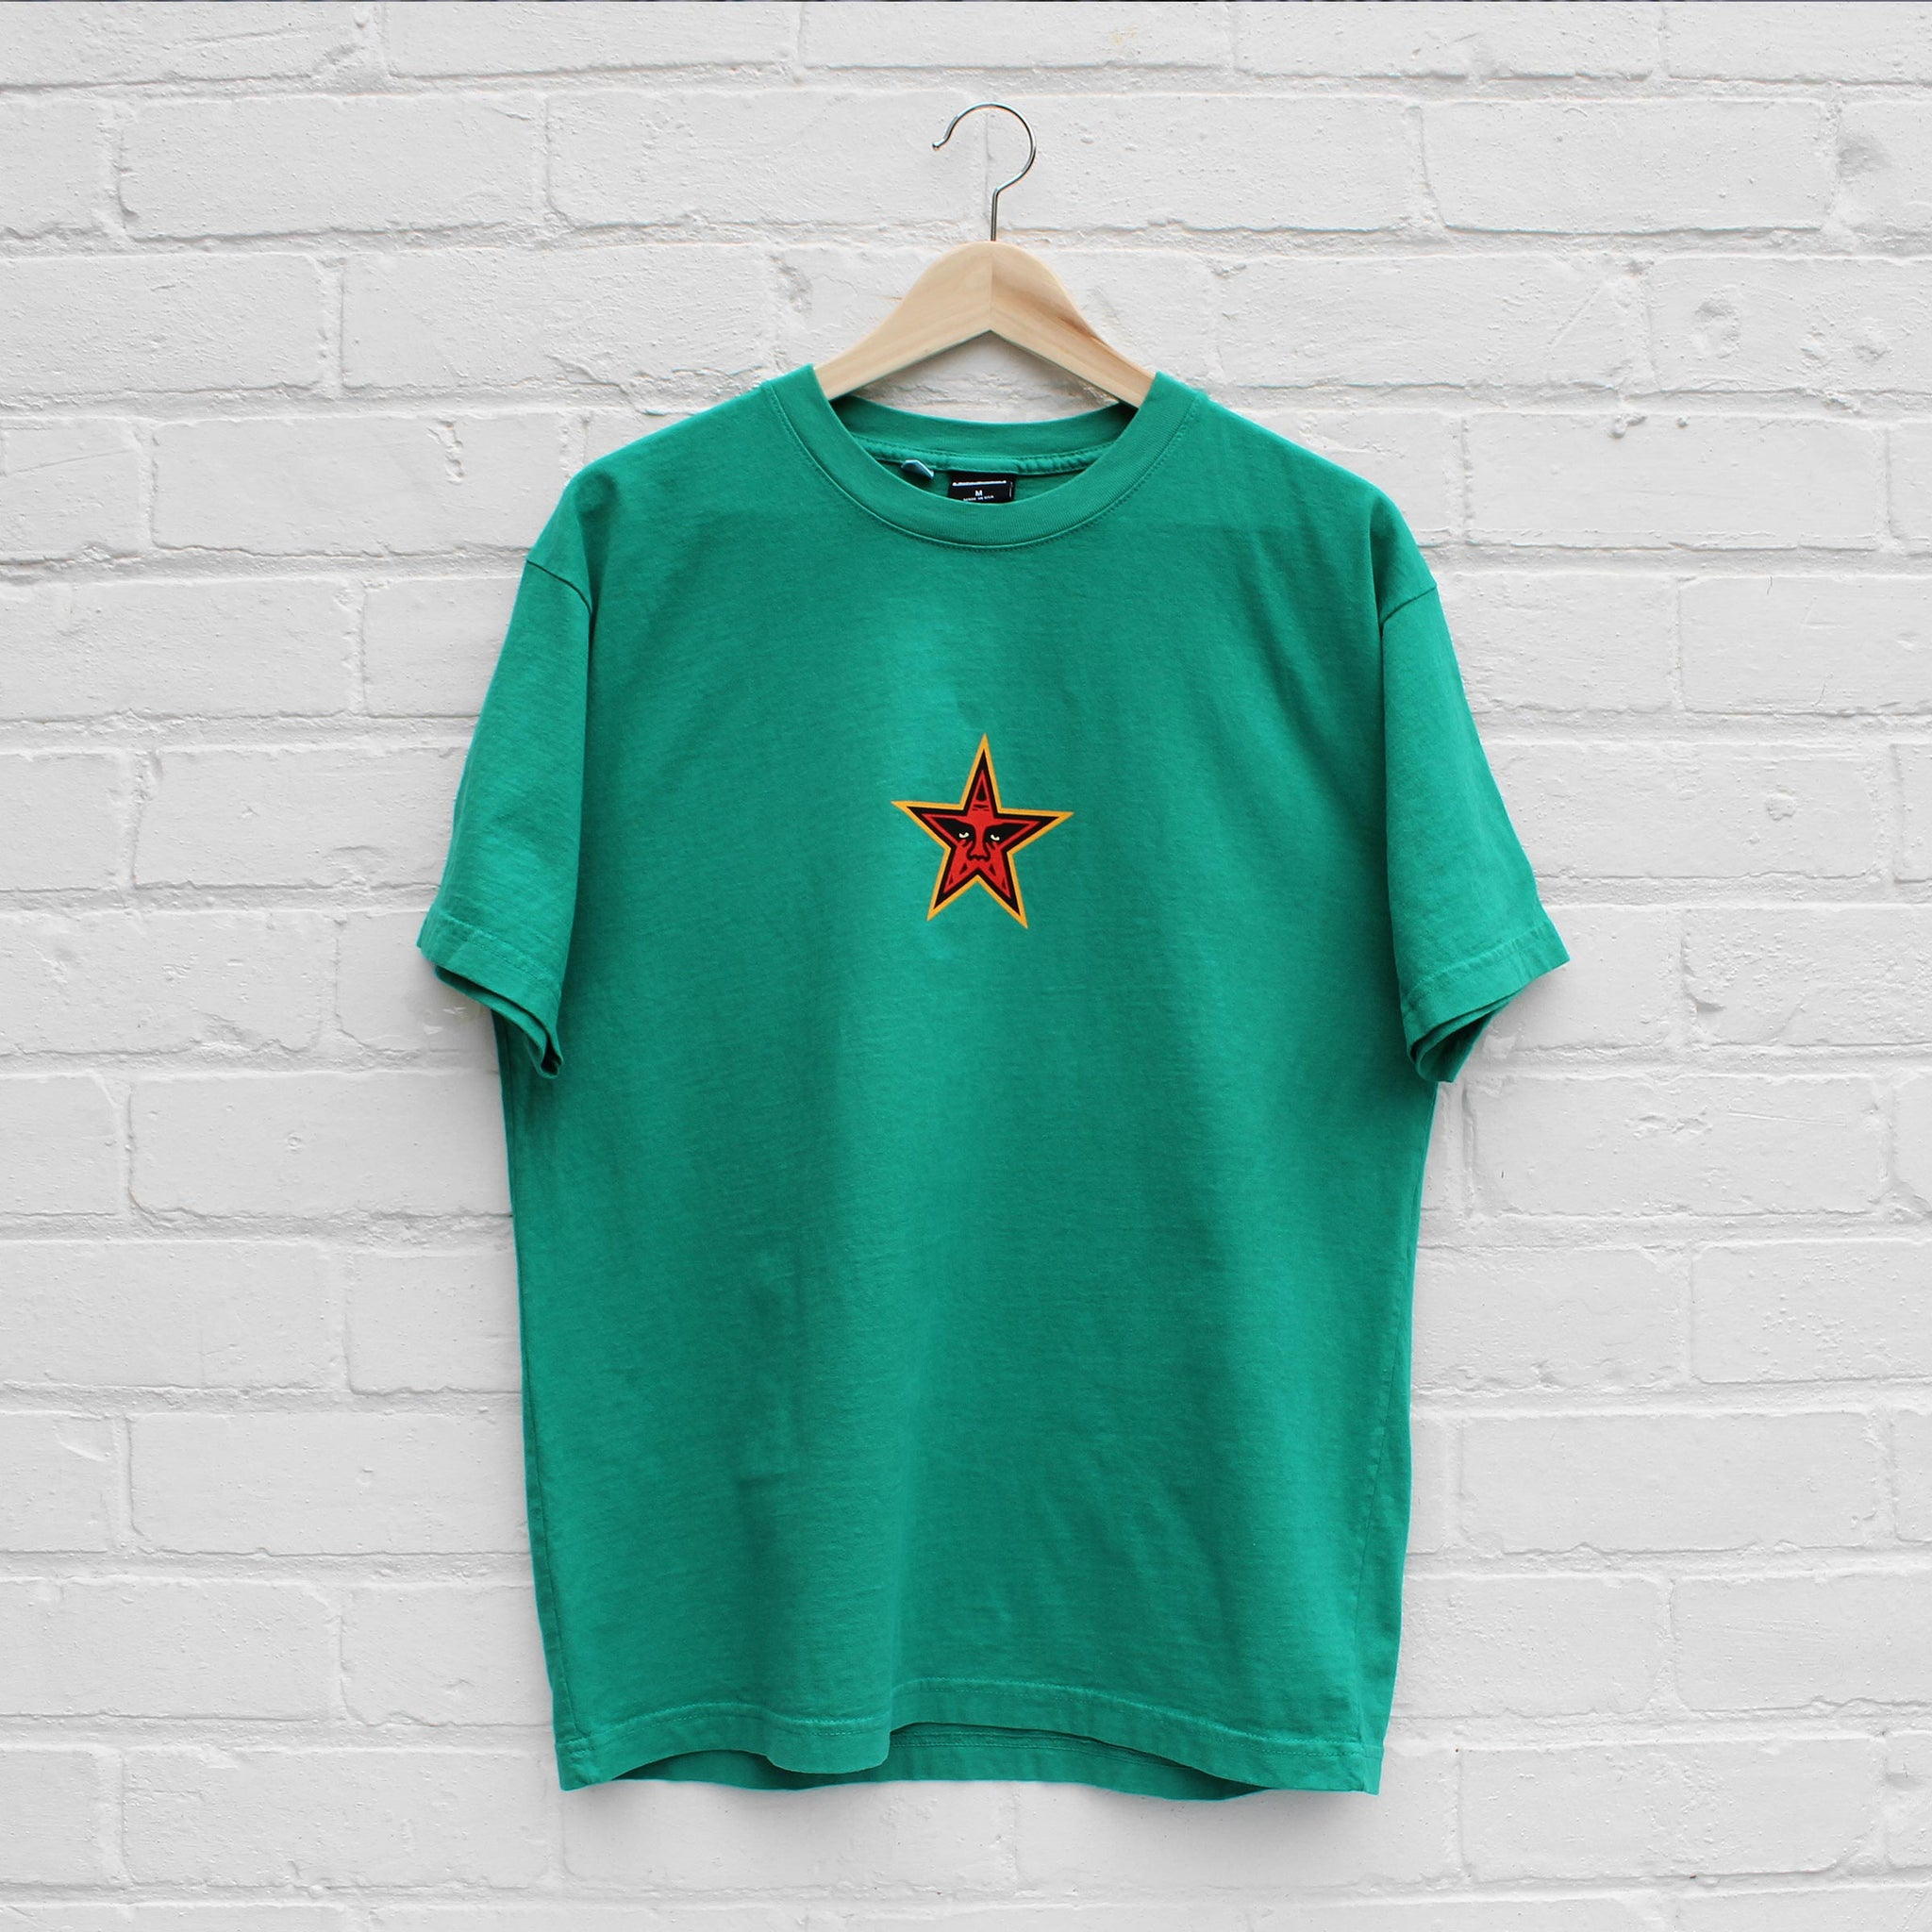 Obey Star Face T-Shirt Emerald